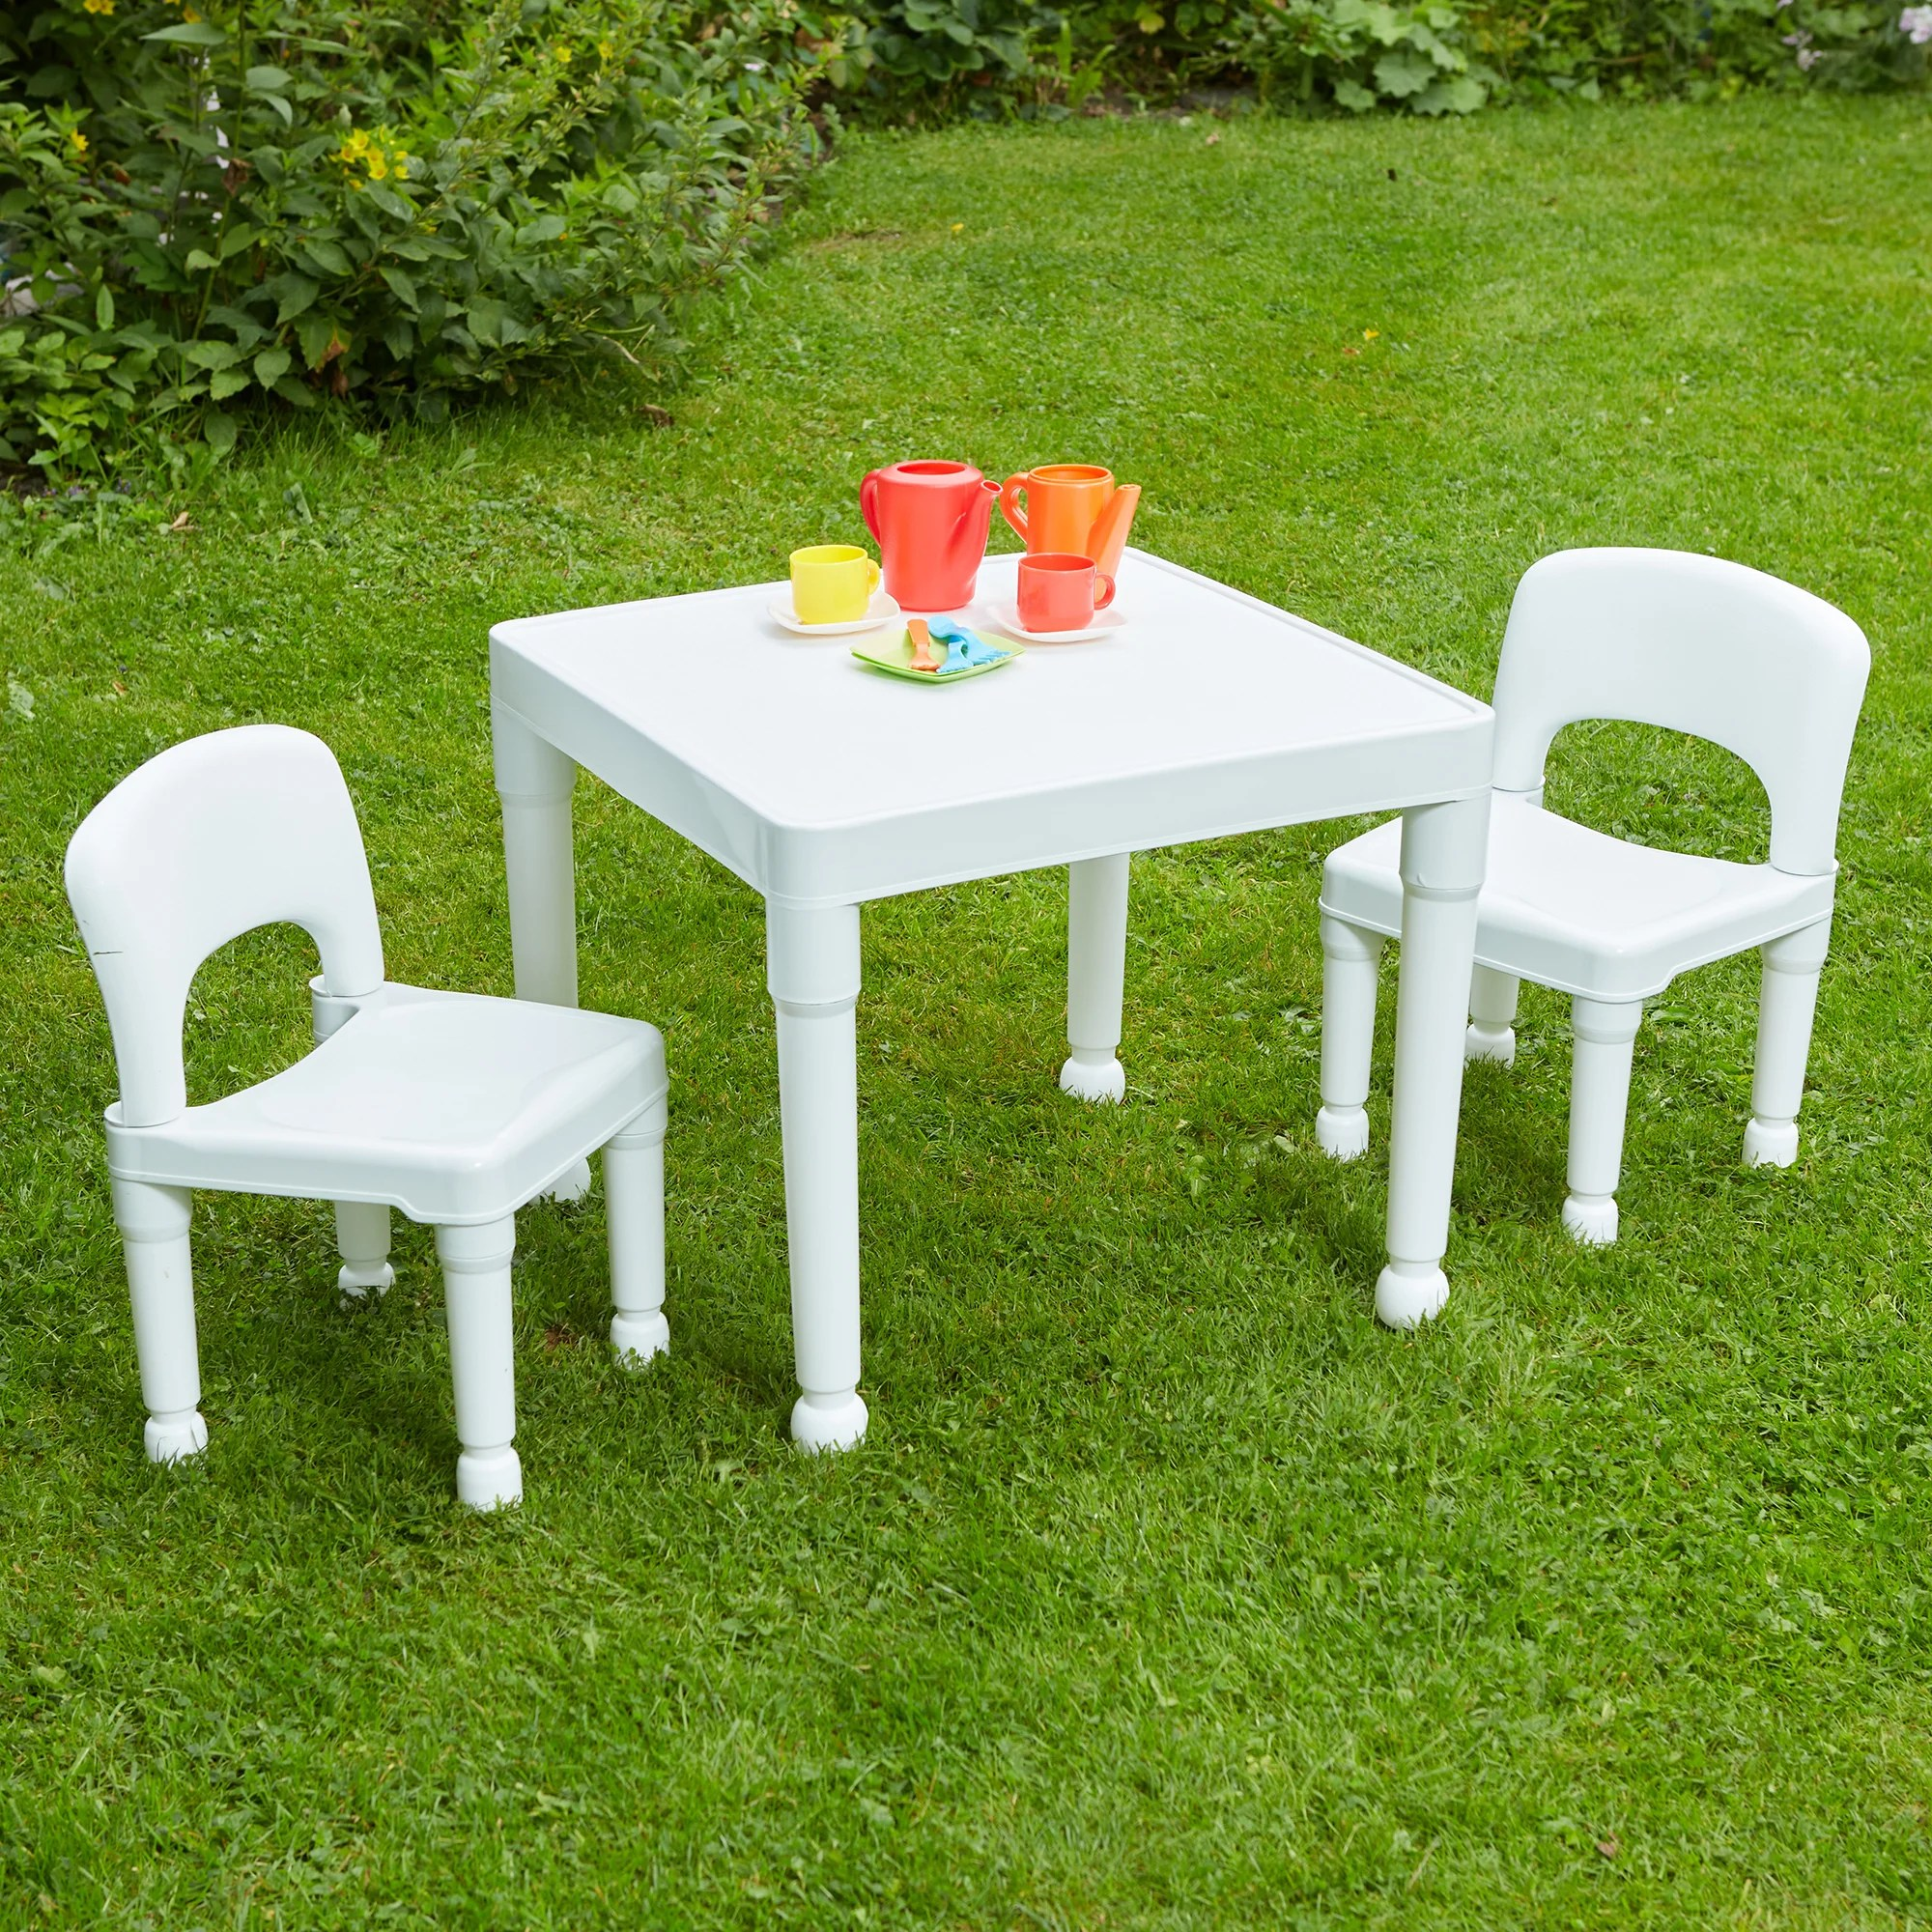 Harriet Bee Loren Children S 3 Piece Table And Chair Set Reviews Wayfair Co Uk